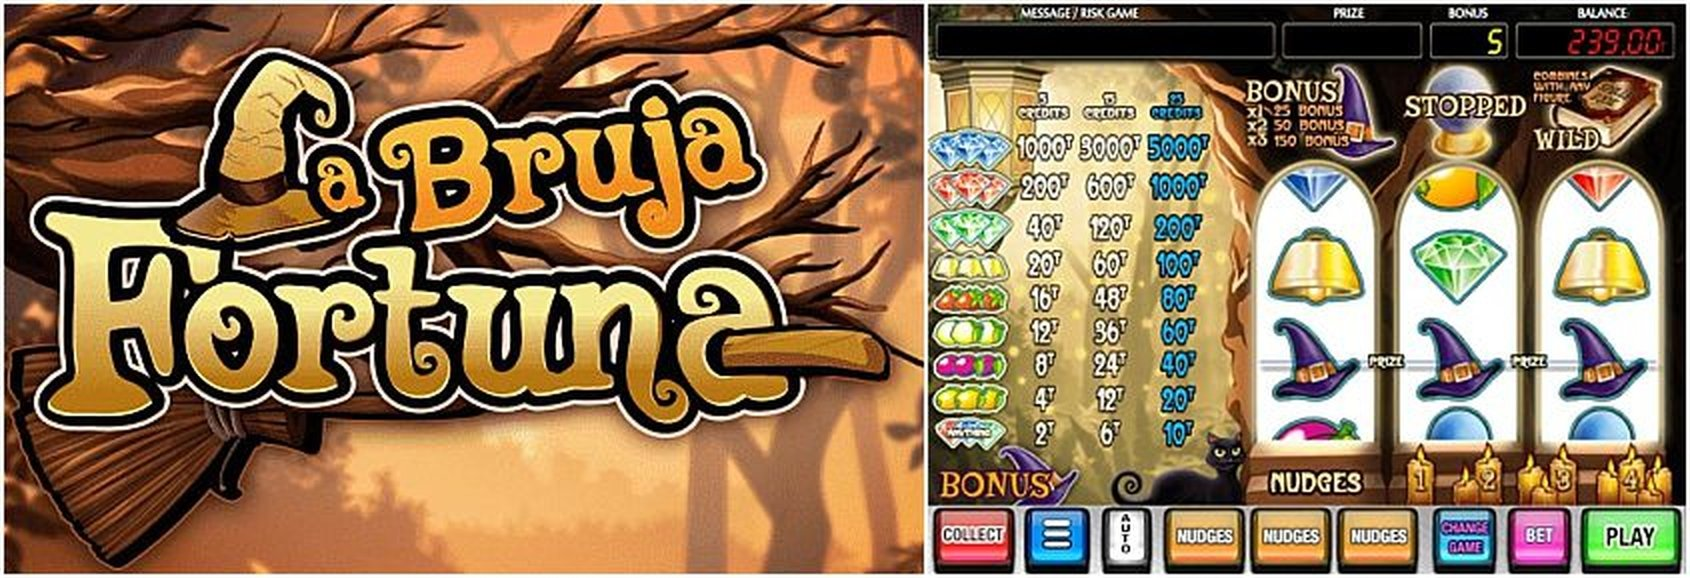 The La Bruja Fortuna Online Slot Demo Game by MGA